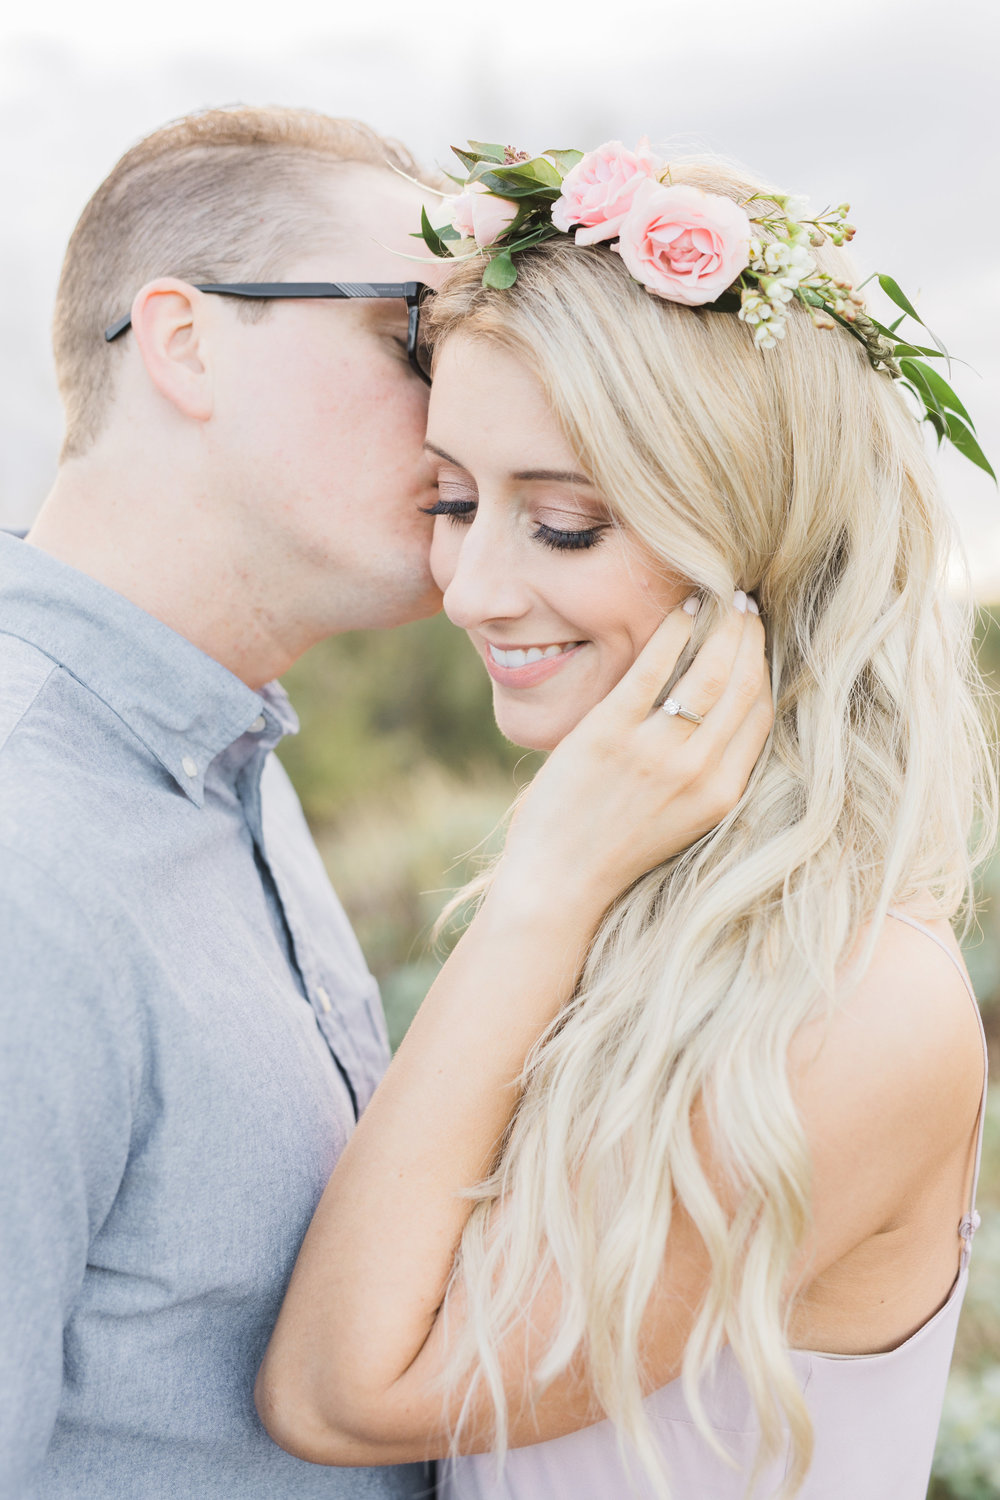 HAIR + MAKEUP: Harley Ann Artistry | PHOTO: Ashley Rae Photography | FLOWERS: The Wild Flower AZ